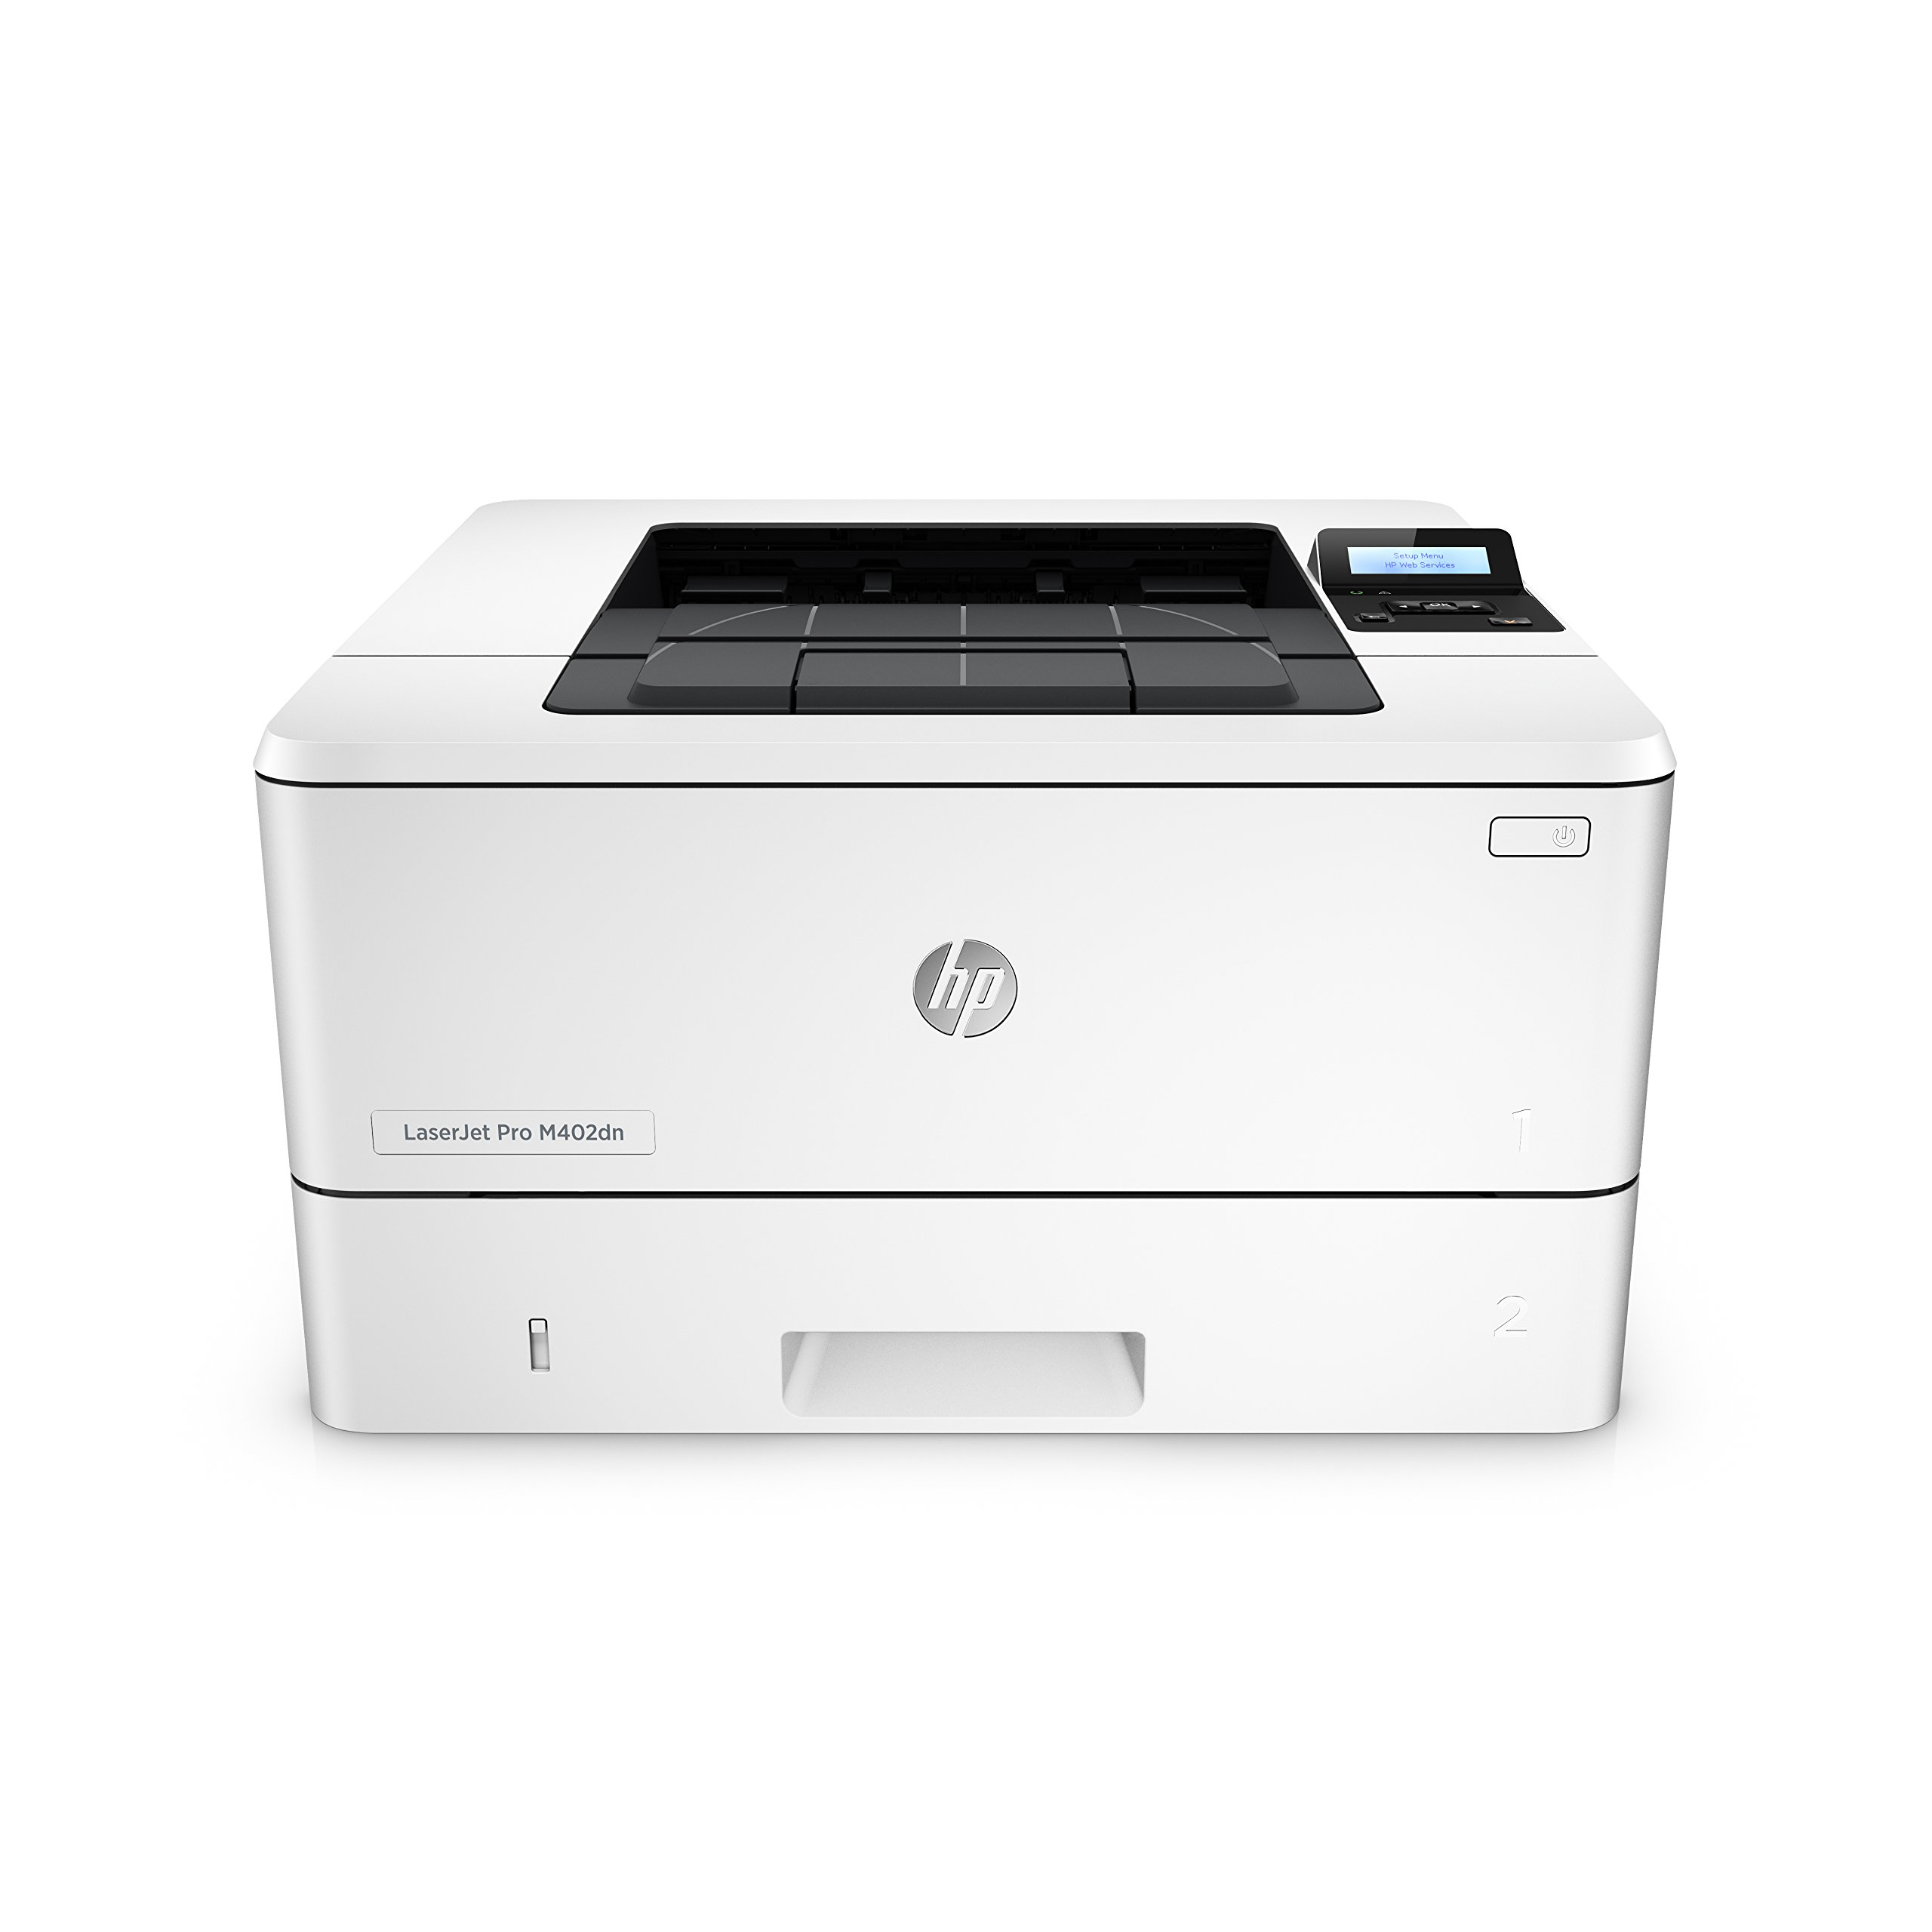 HP LaserJet Pro M402dn Monochrome Printer, (C5F94A) by HP